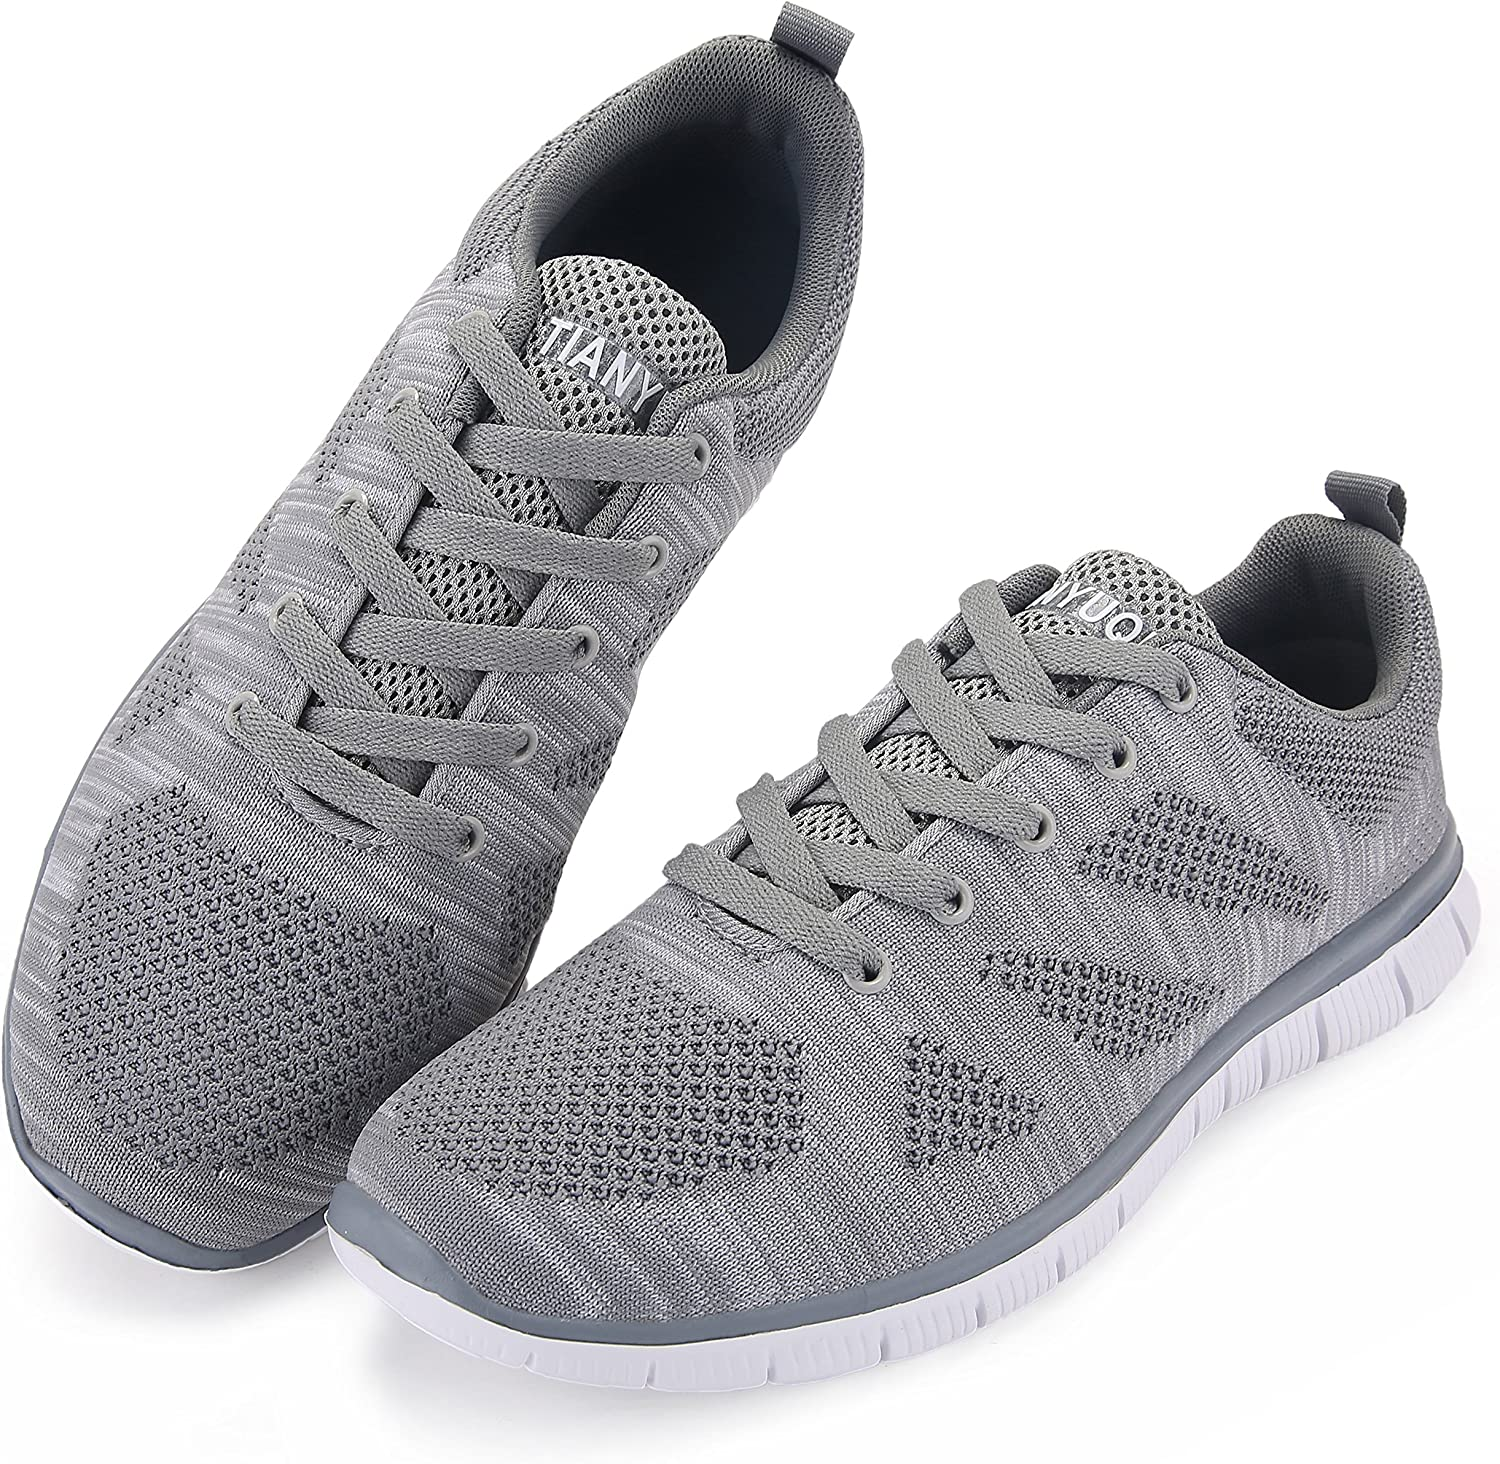 vibdiv Mens Lightweight Athletic Sneakers Lace-Up Mesh Distance Running Shoes